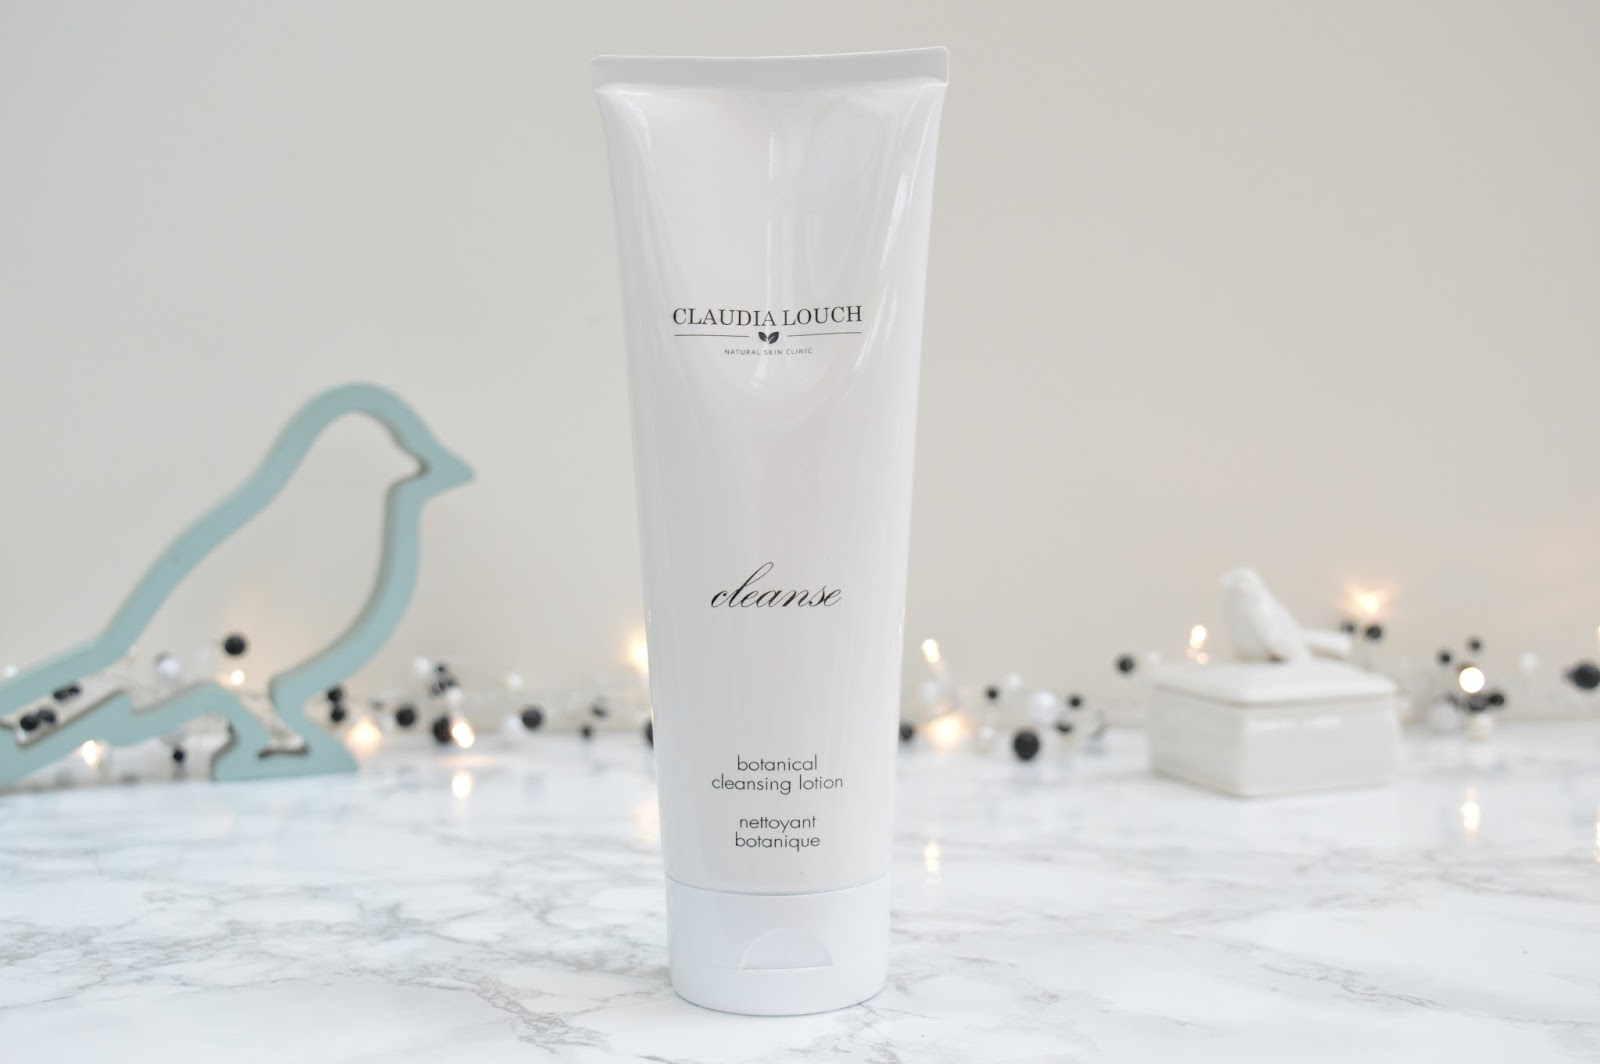 Claudia Louch Botanical Cleansing Lotion